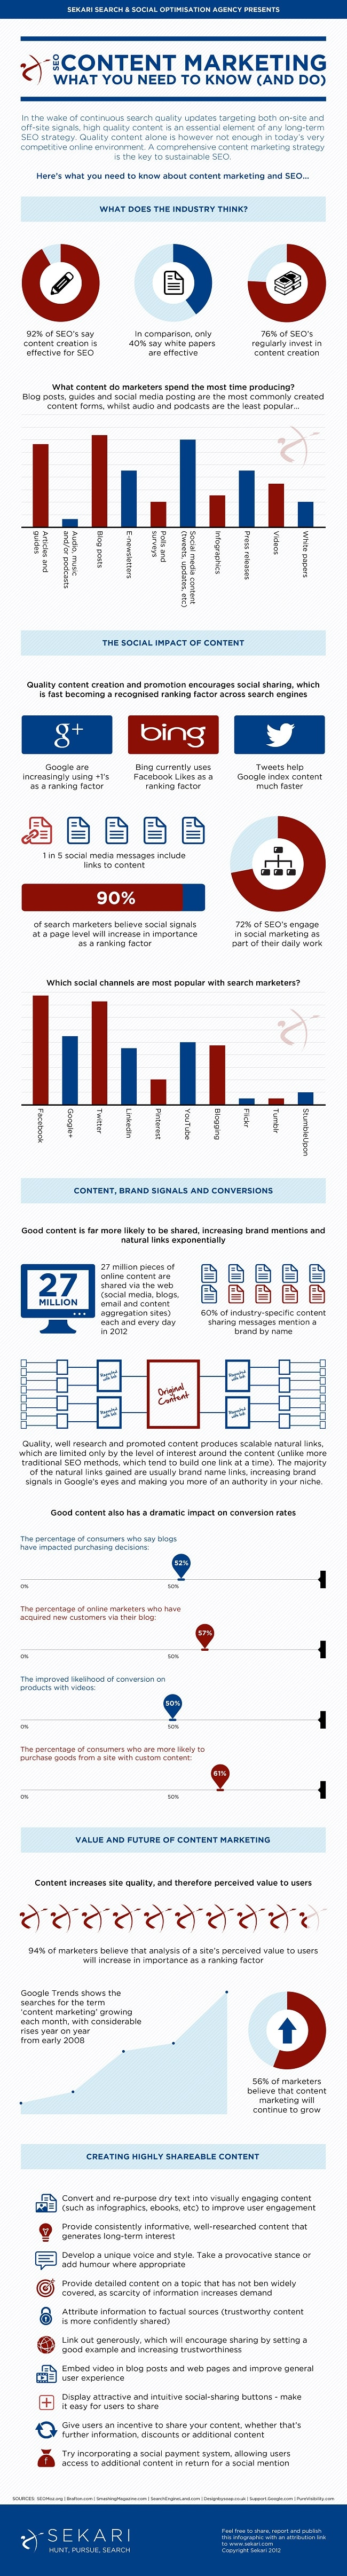 content-marketing-seo-strategy-infographic